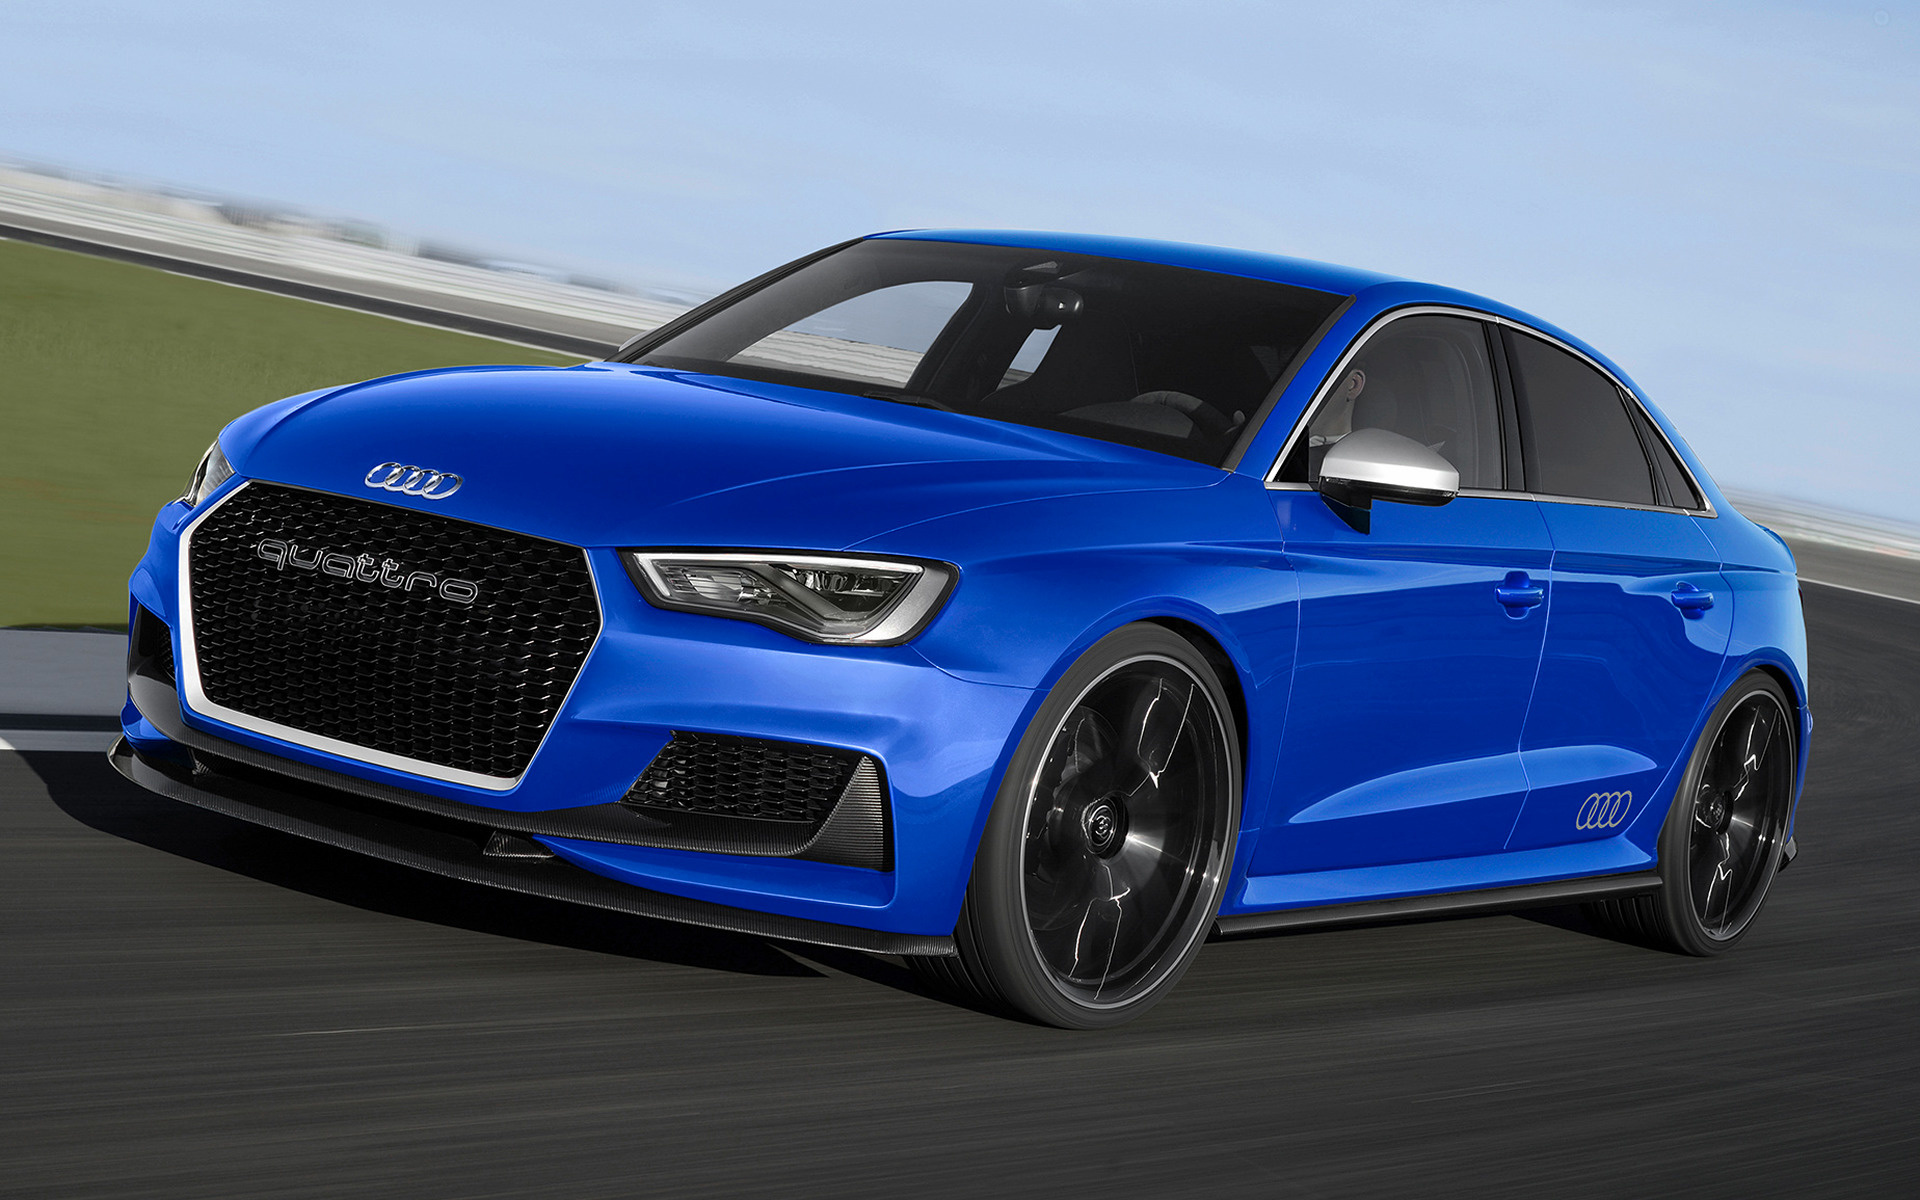 2014 audi a3 clubsport quattro concept wallpapers and hd. Black Bedroom Furniture Sets. Home Design Ideas